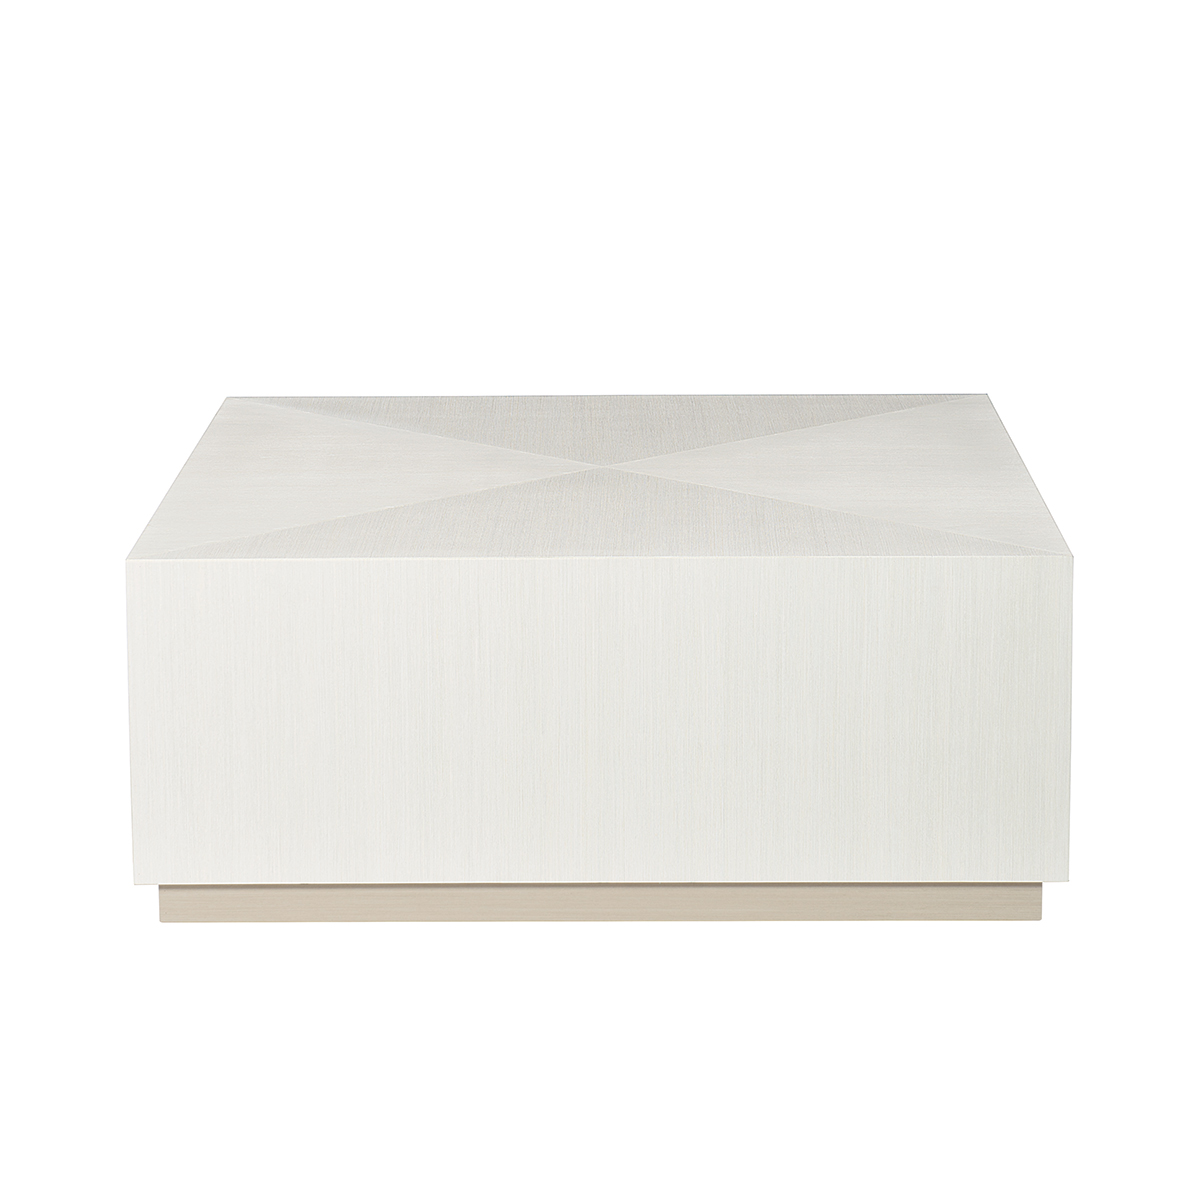 axiom-square-cocktail-table-bernhardt